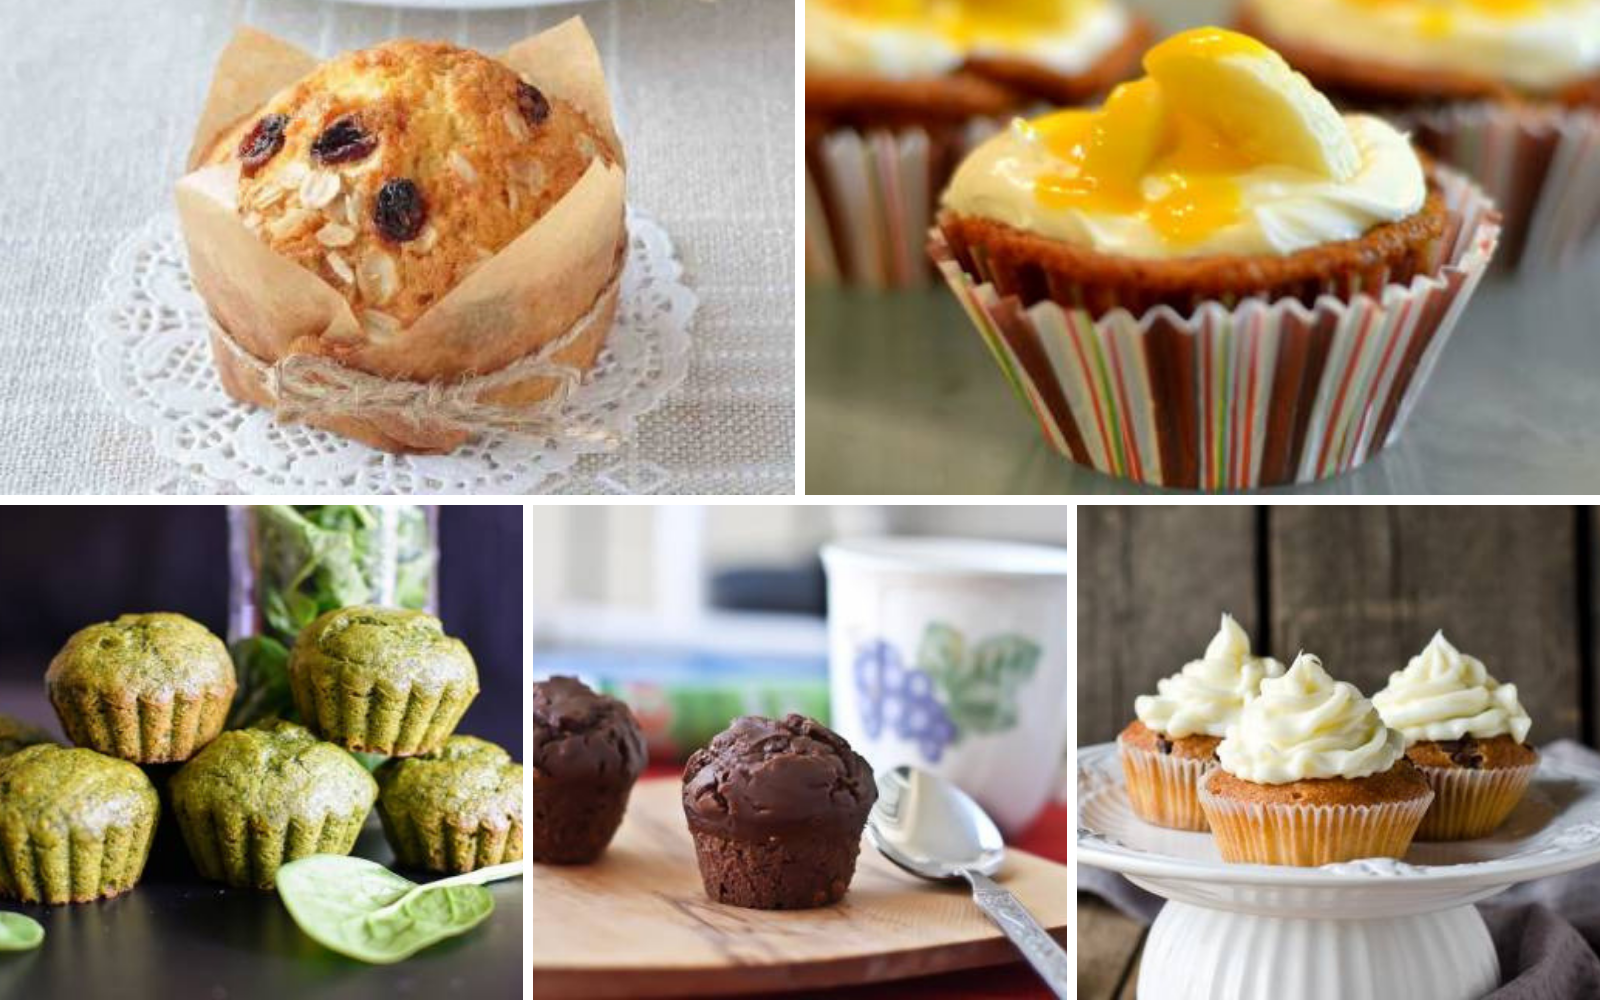 43 Delicious Cupcake And Muffin Recipes For Breakfast Or Snack